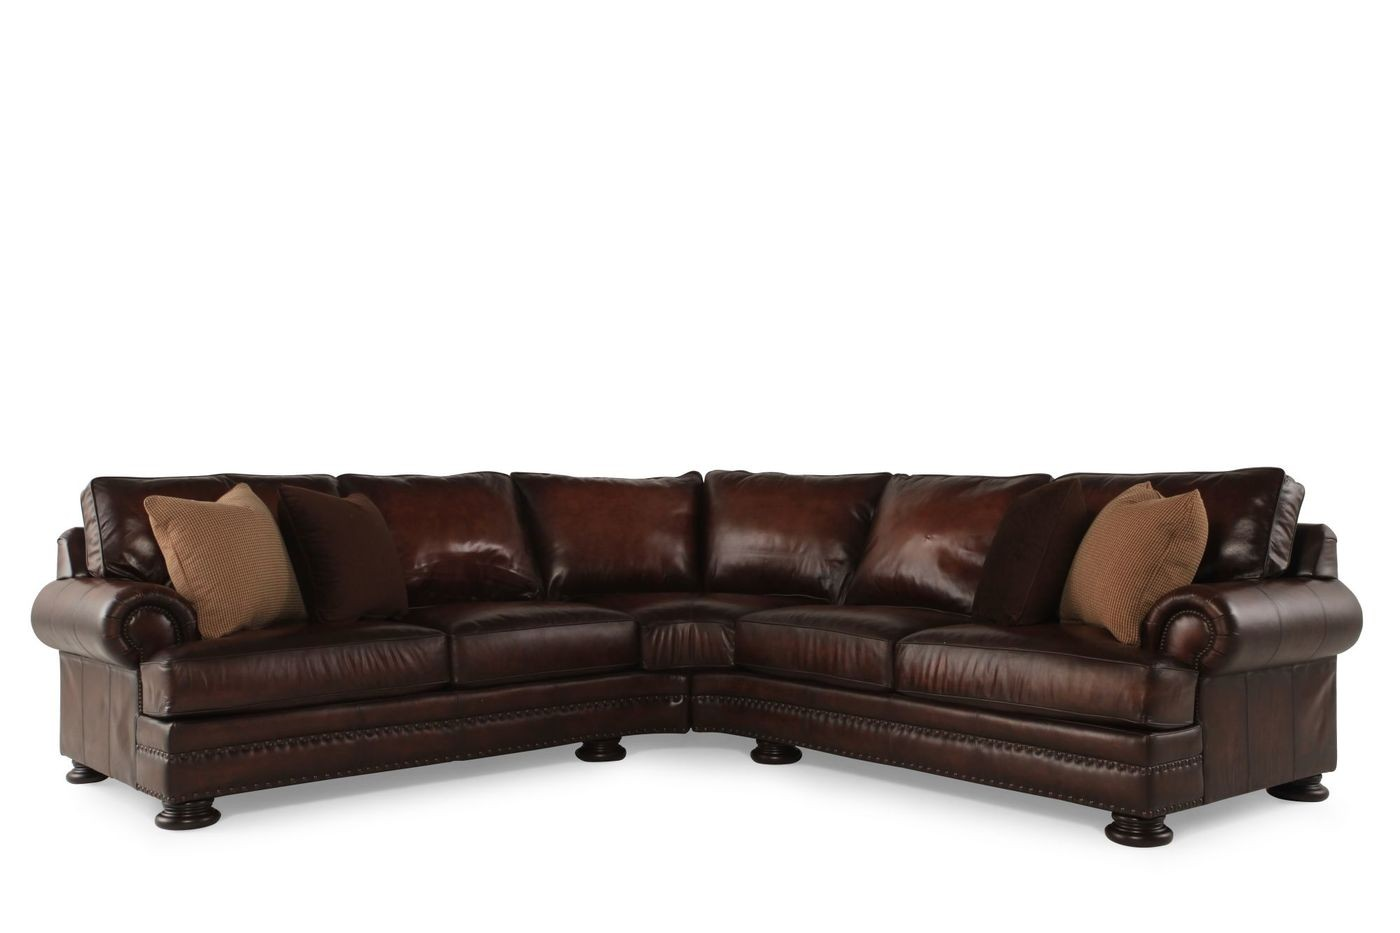 Mathis Brothers Leather Sofas